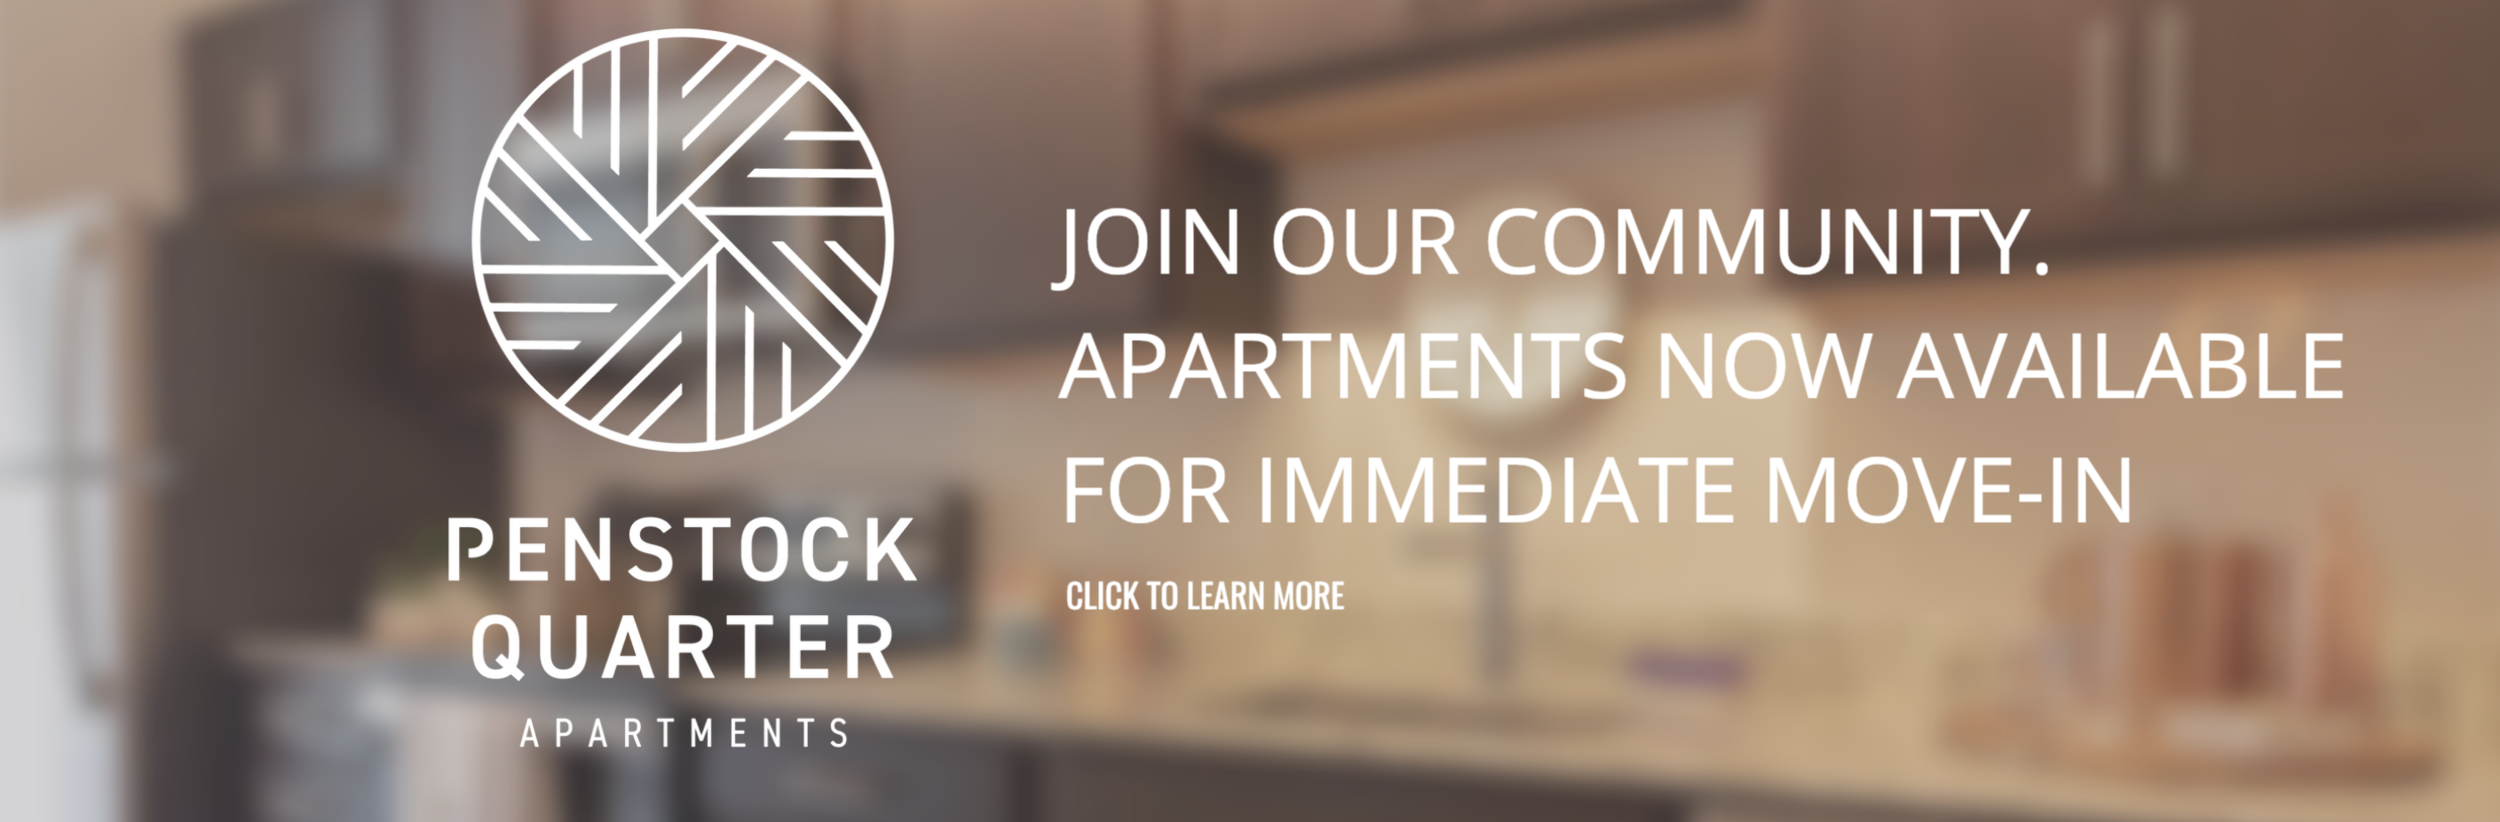 Penstock Quarter - Join Our Community. Apartments Now Available for Immediate Move-In